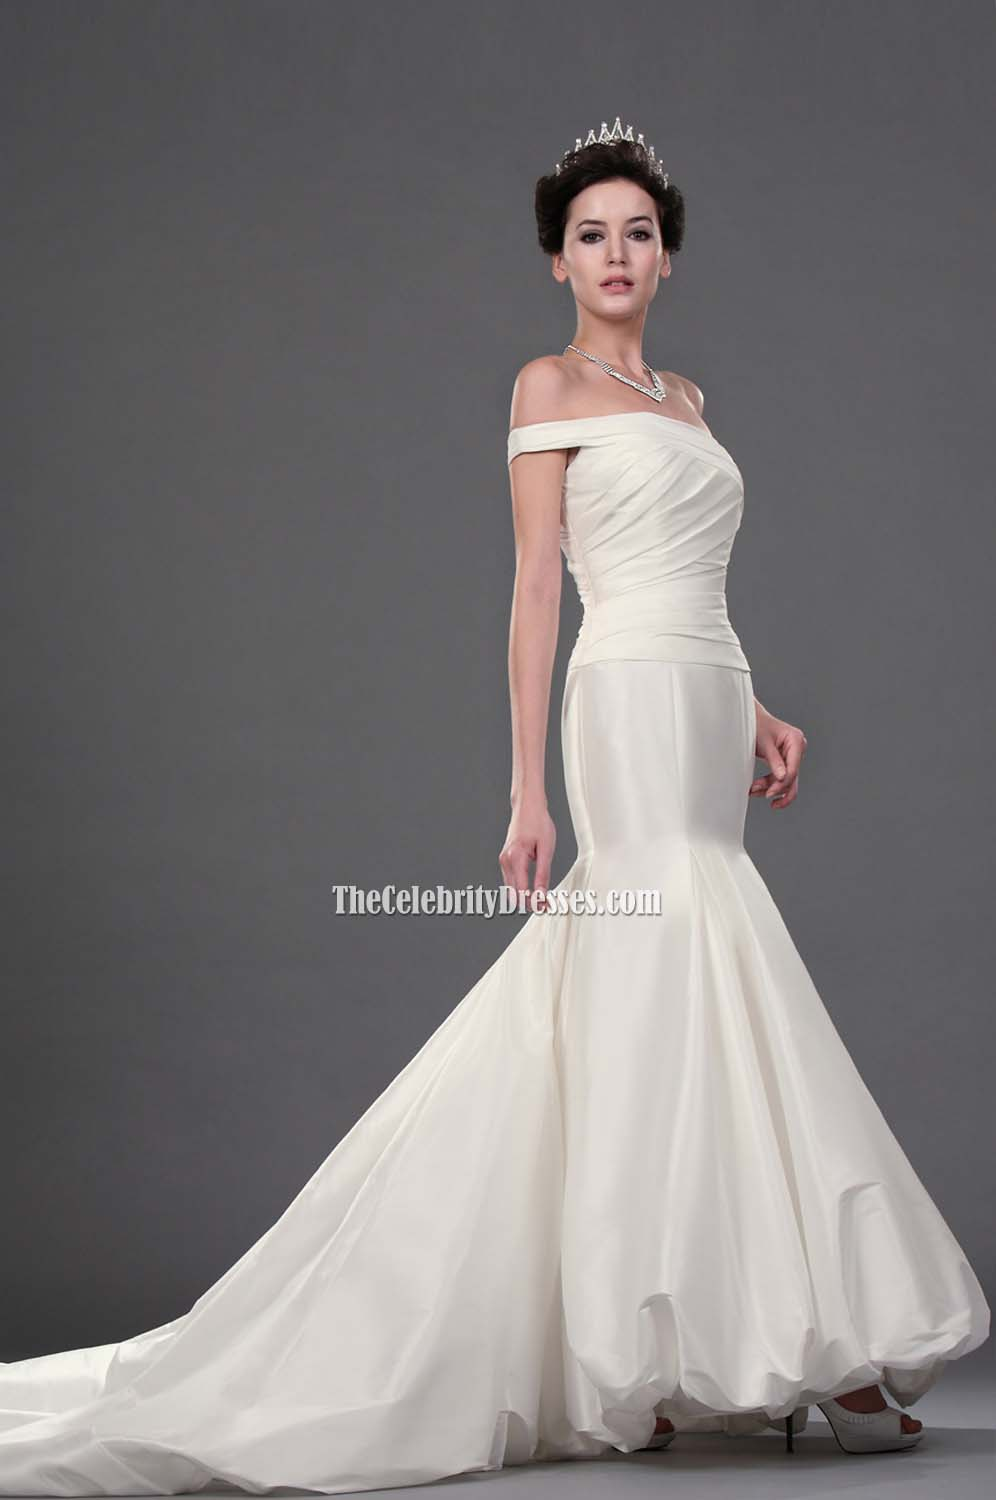 Anne Hathaway Wedding Gown In Movie Bride Wars Tcd0207 Thecelebritydresses